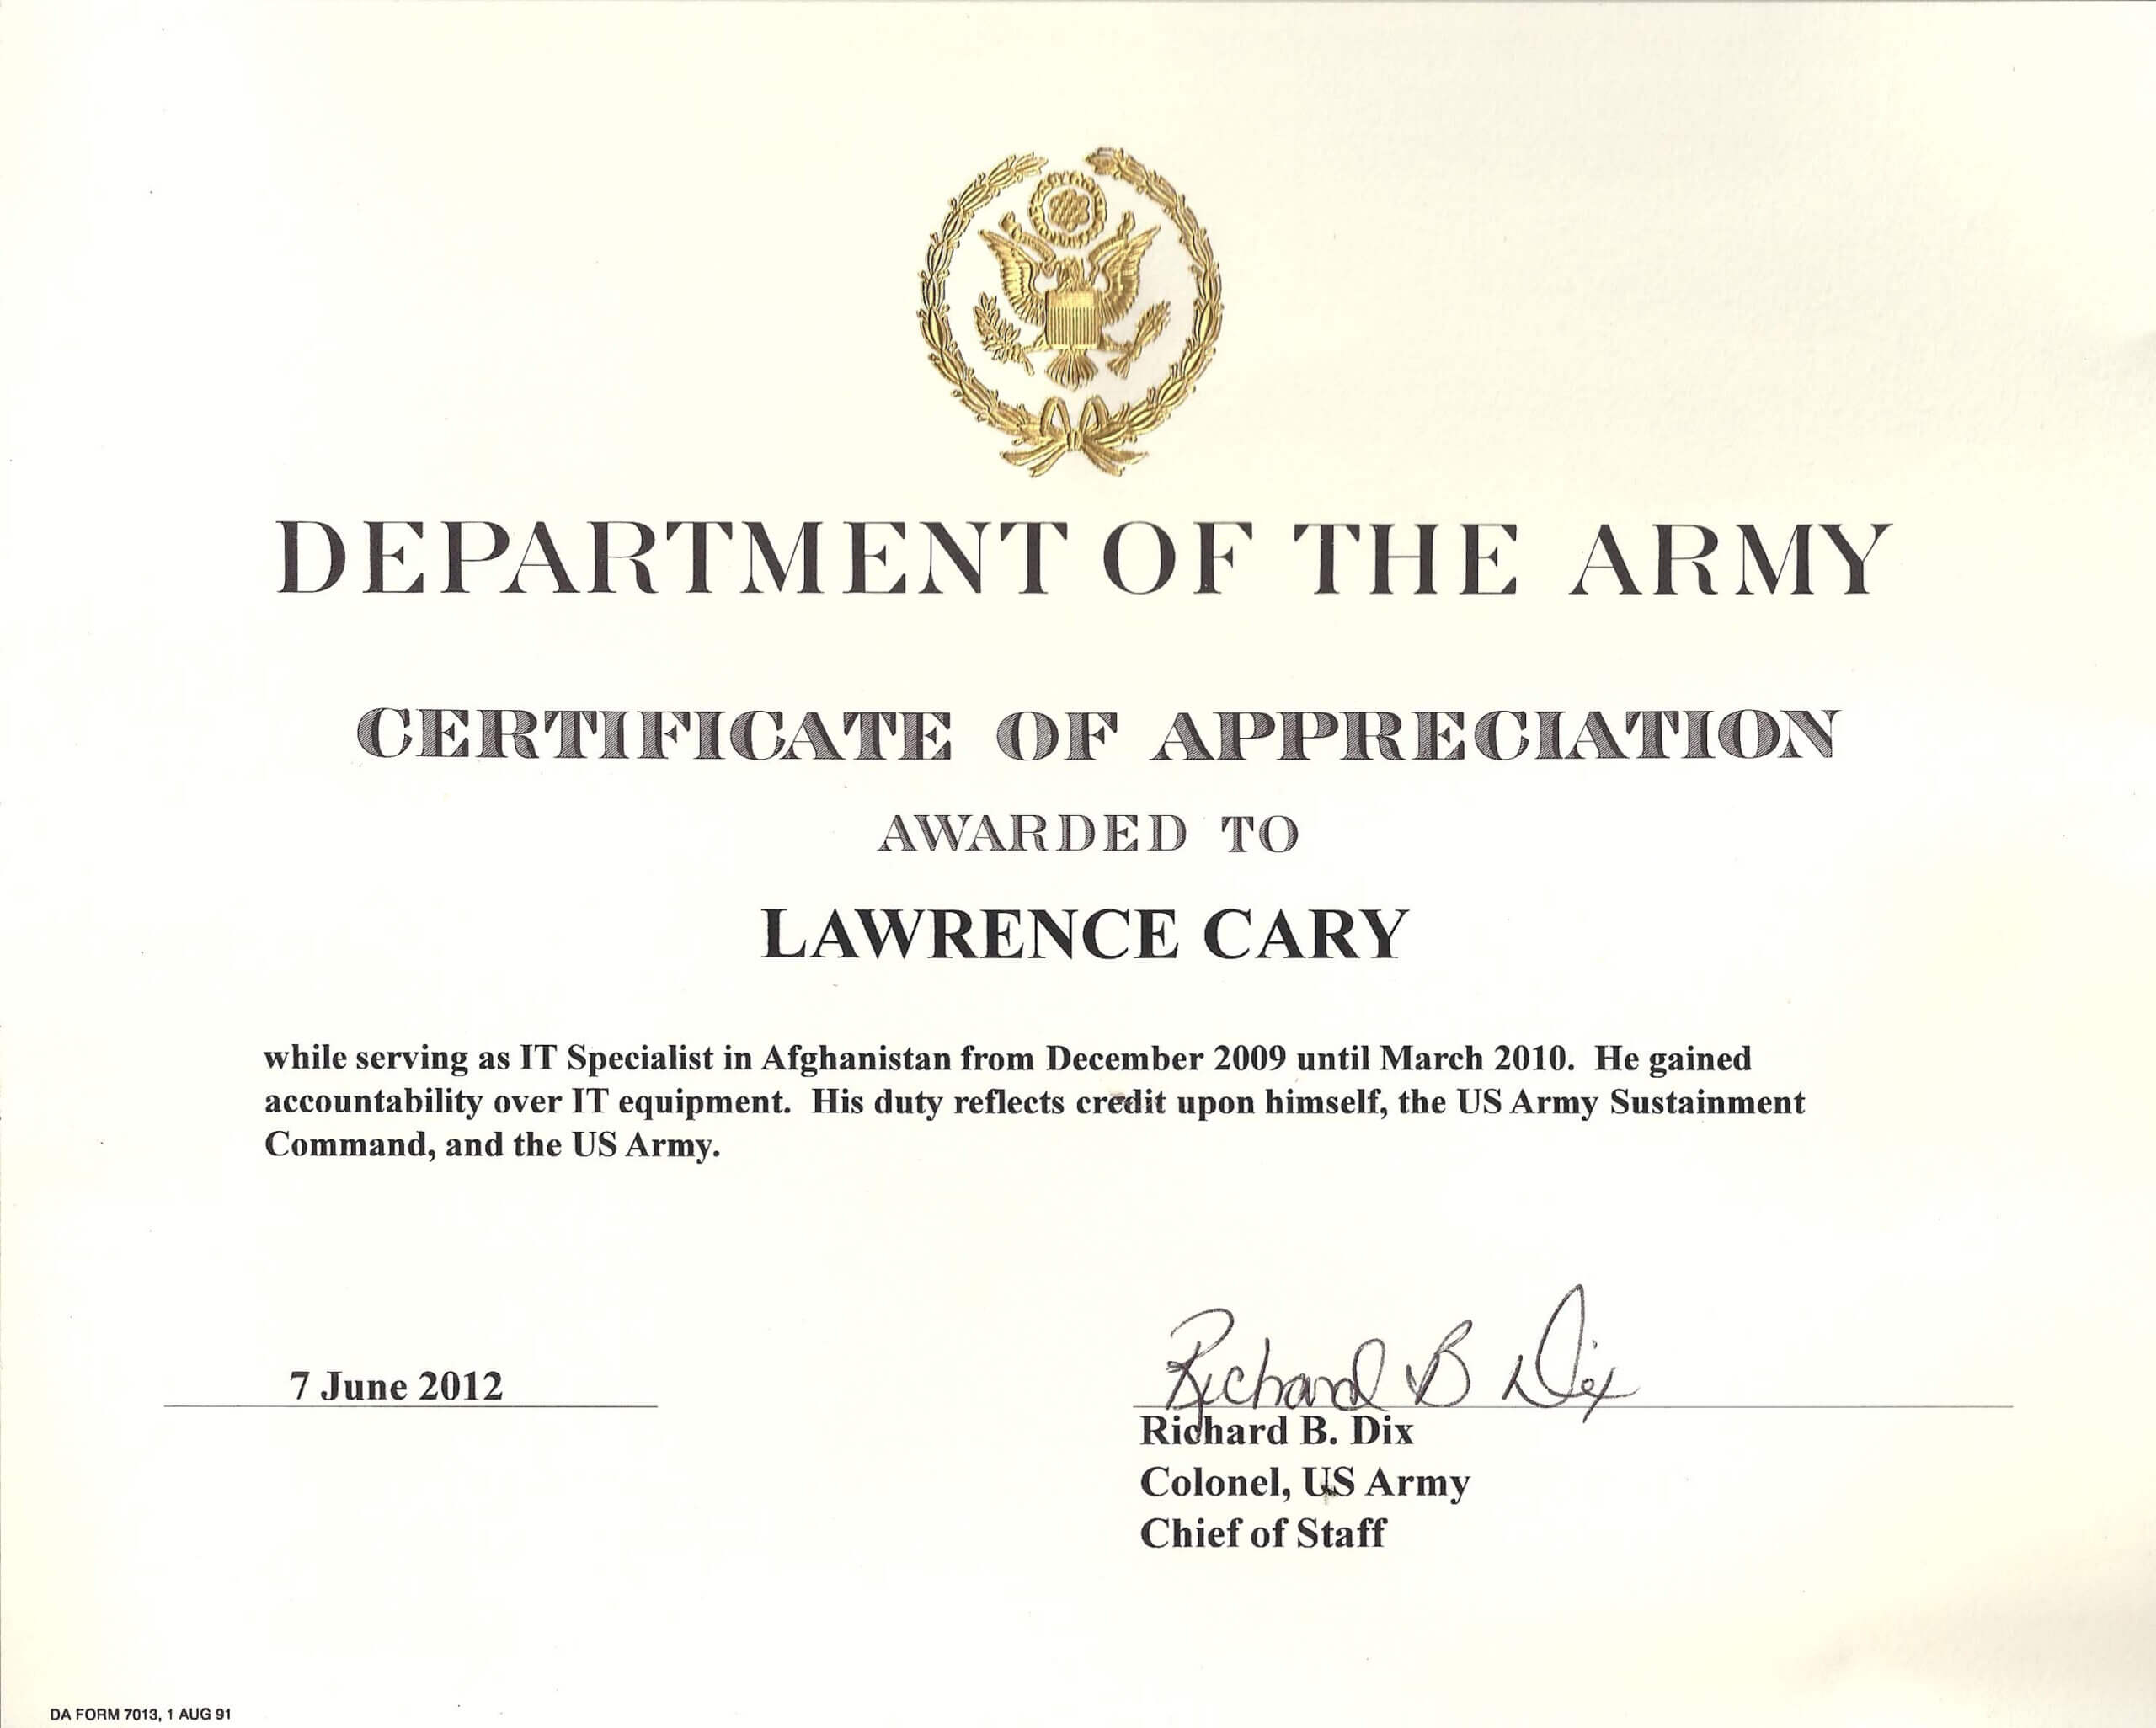 001 Army Certificate Of Appreciation Template Ideas Intended For Army Certificate Of Achievement Template